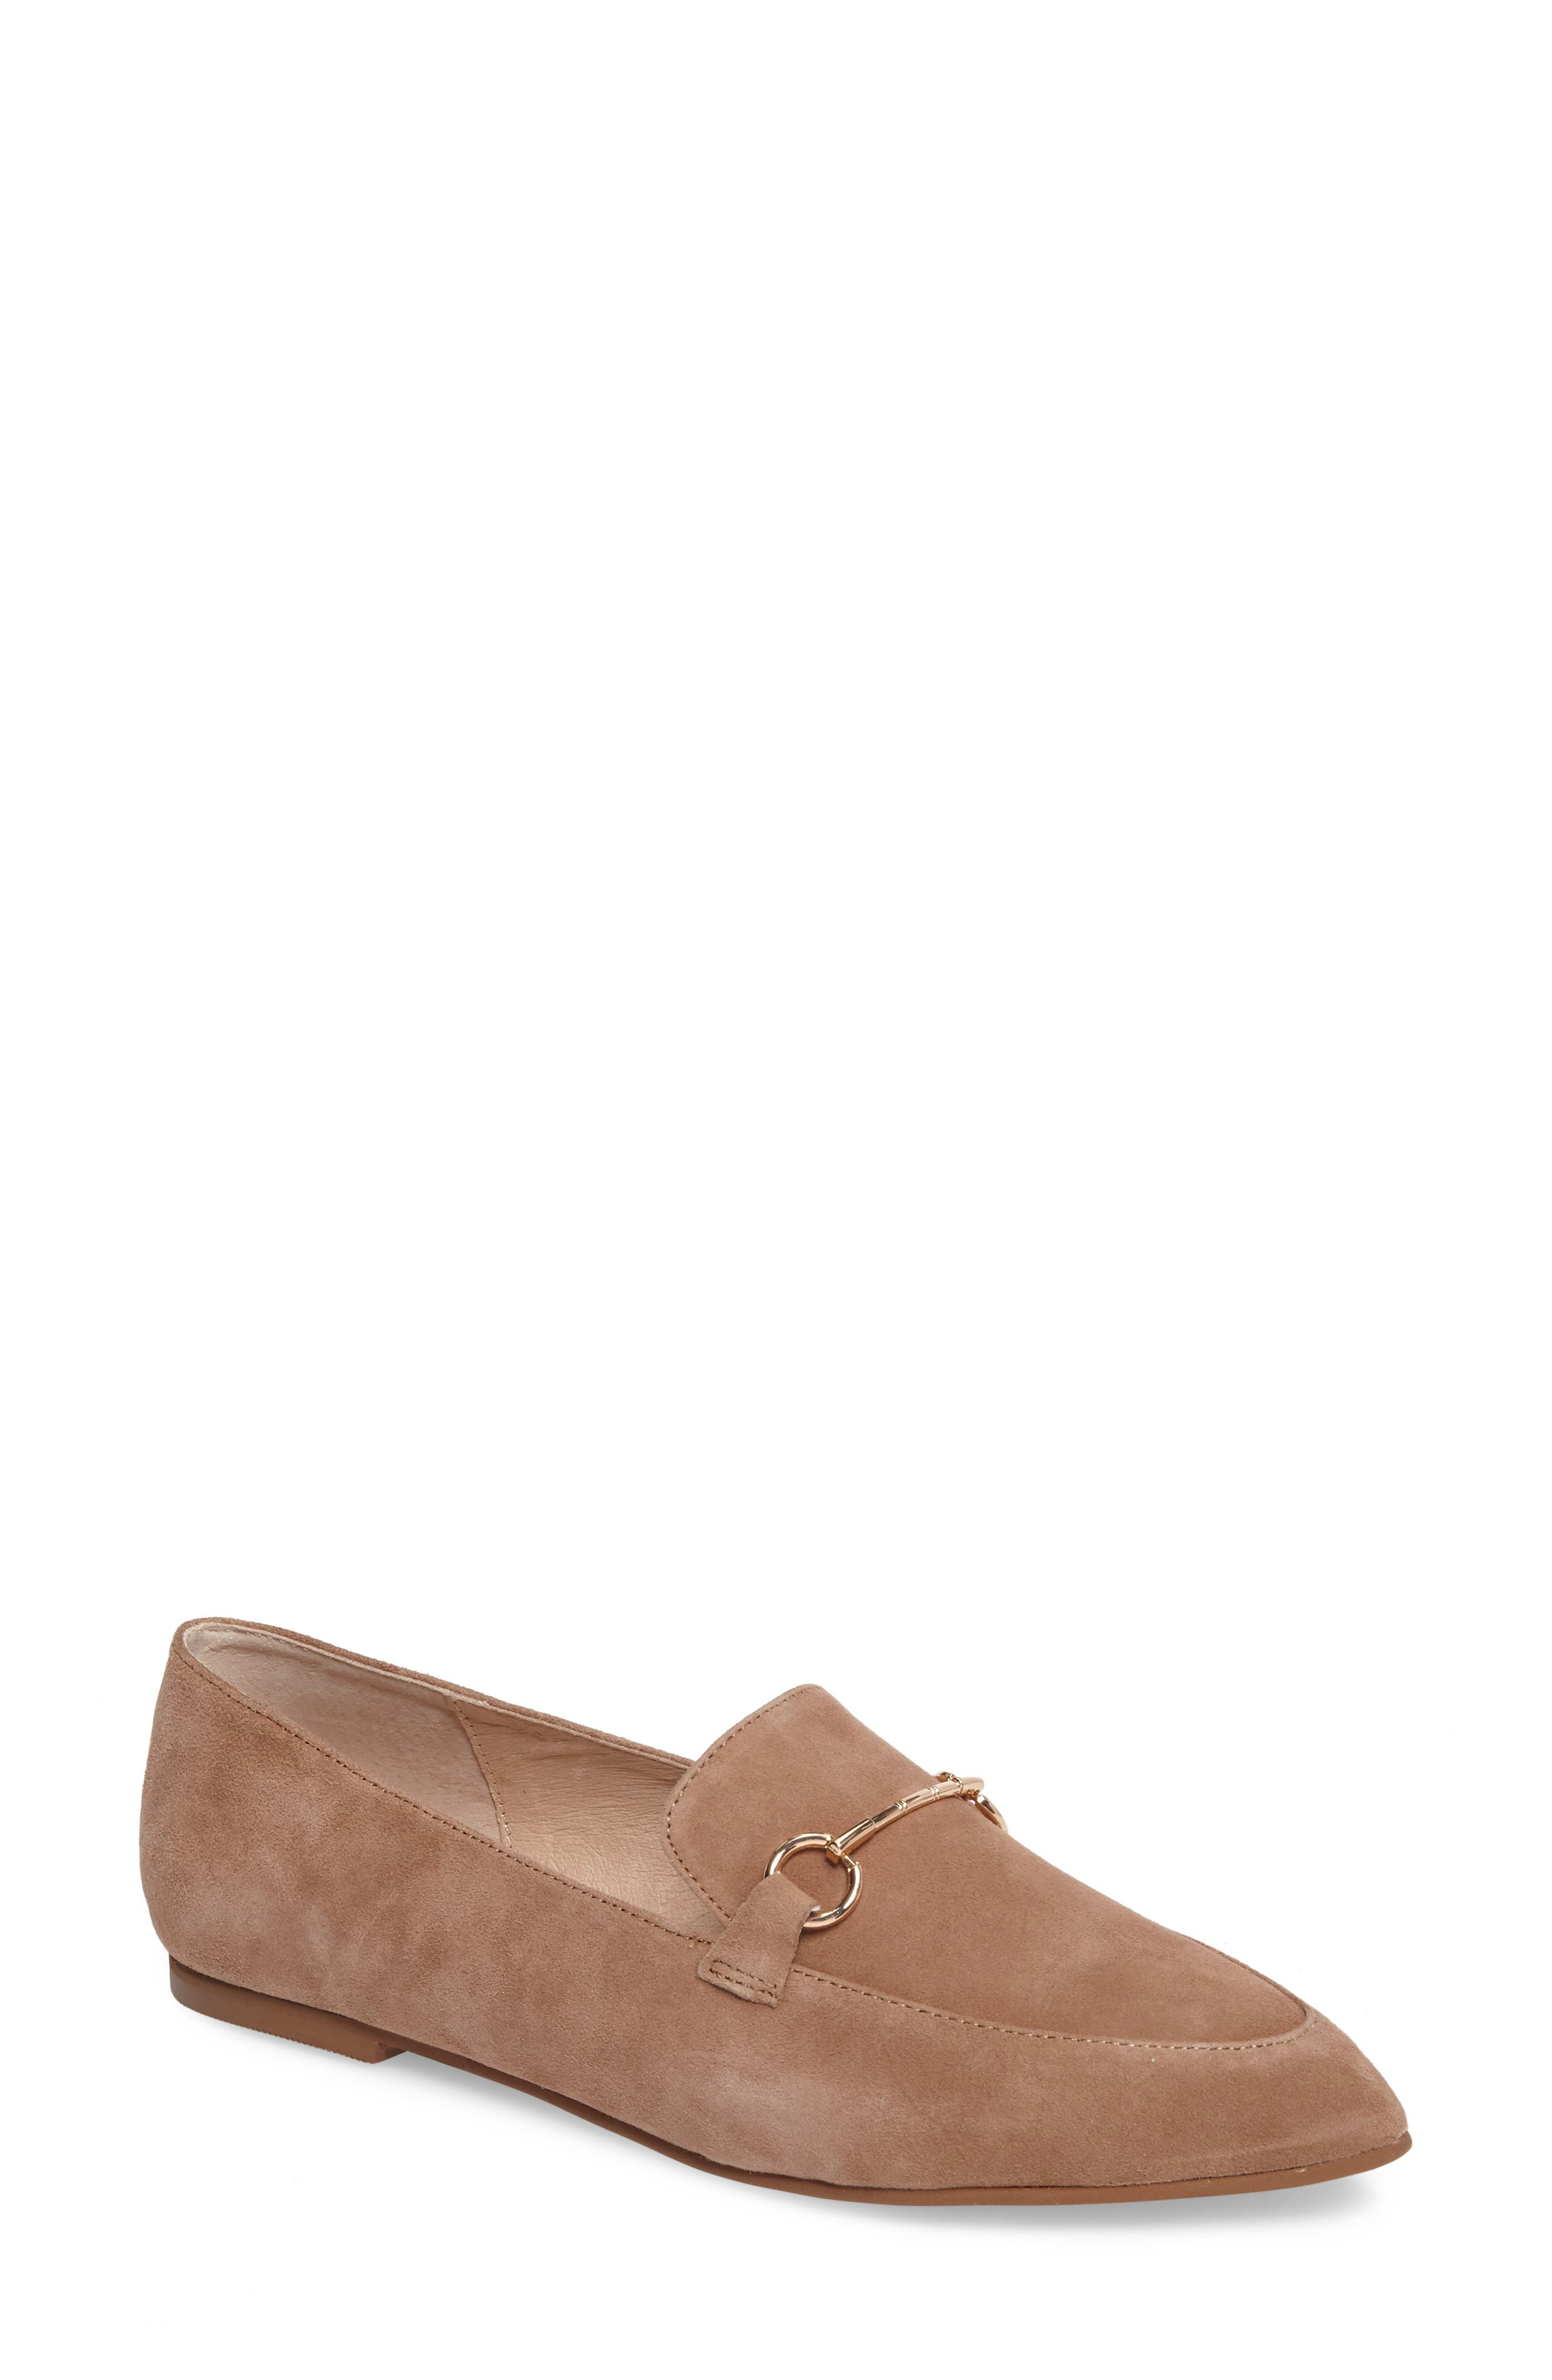 Cambrie Loafer Flat,                             Main thumbnail 1, color,                             Clay Suede